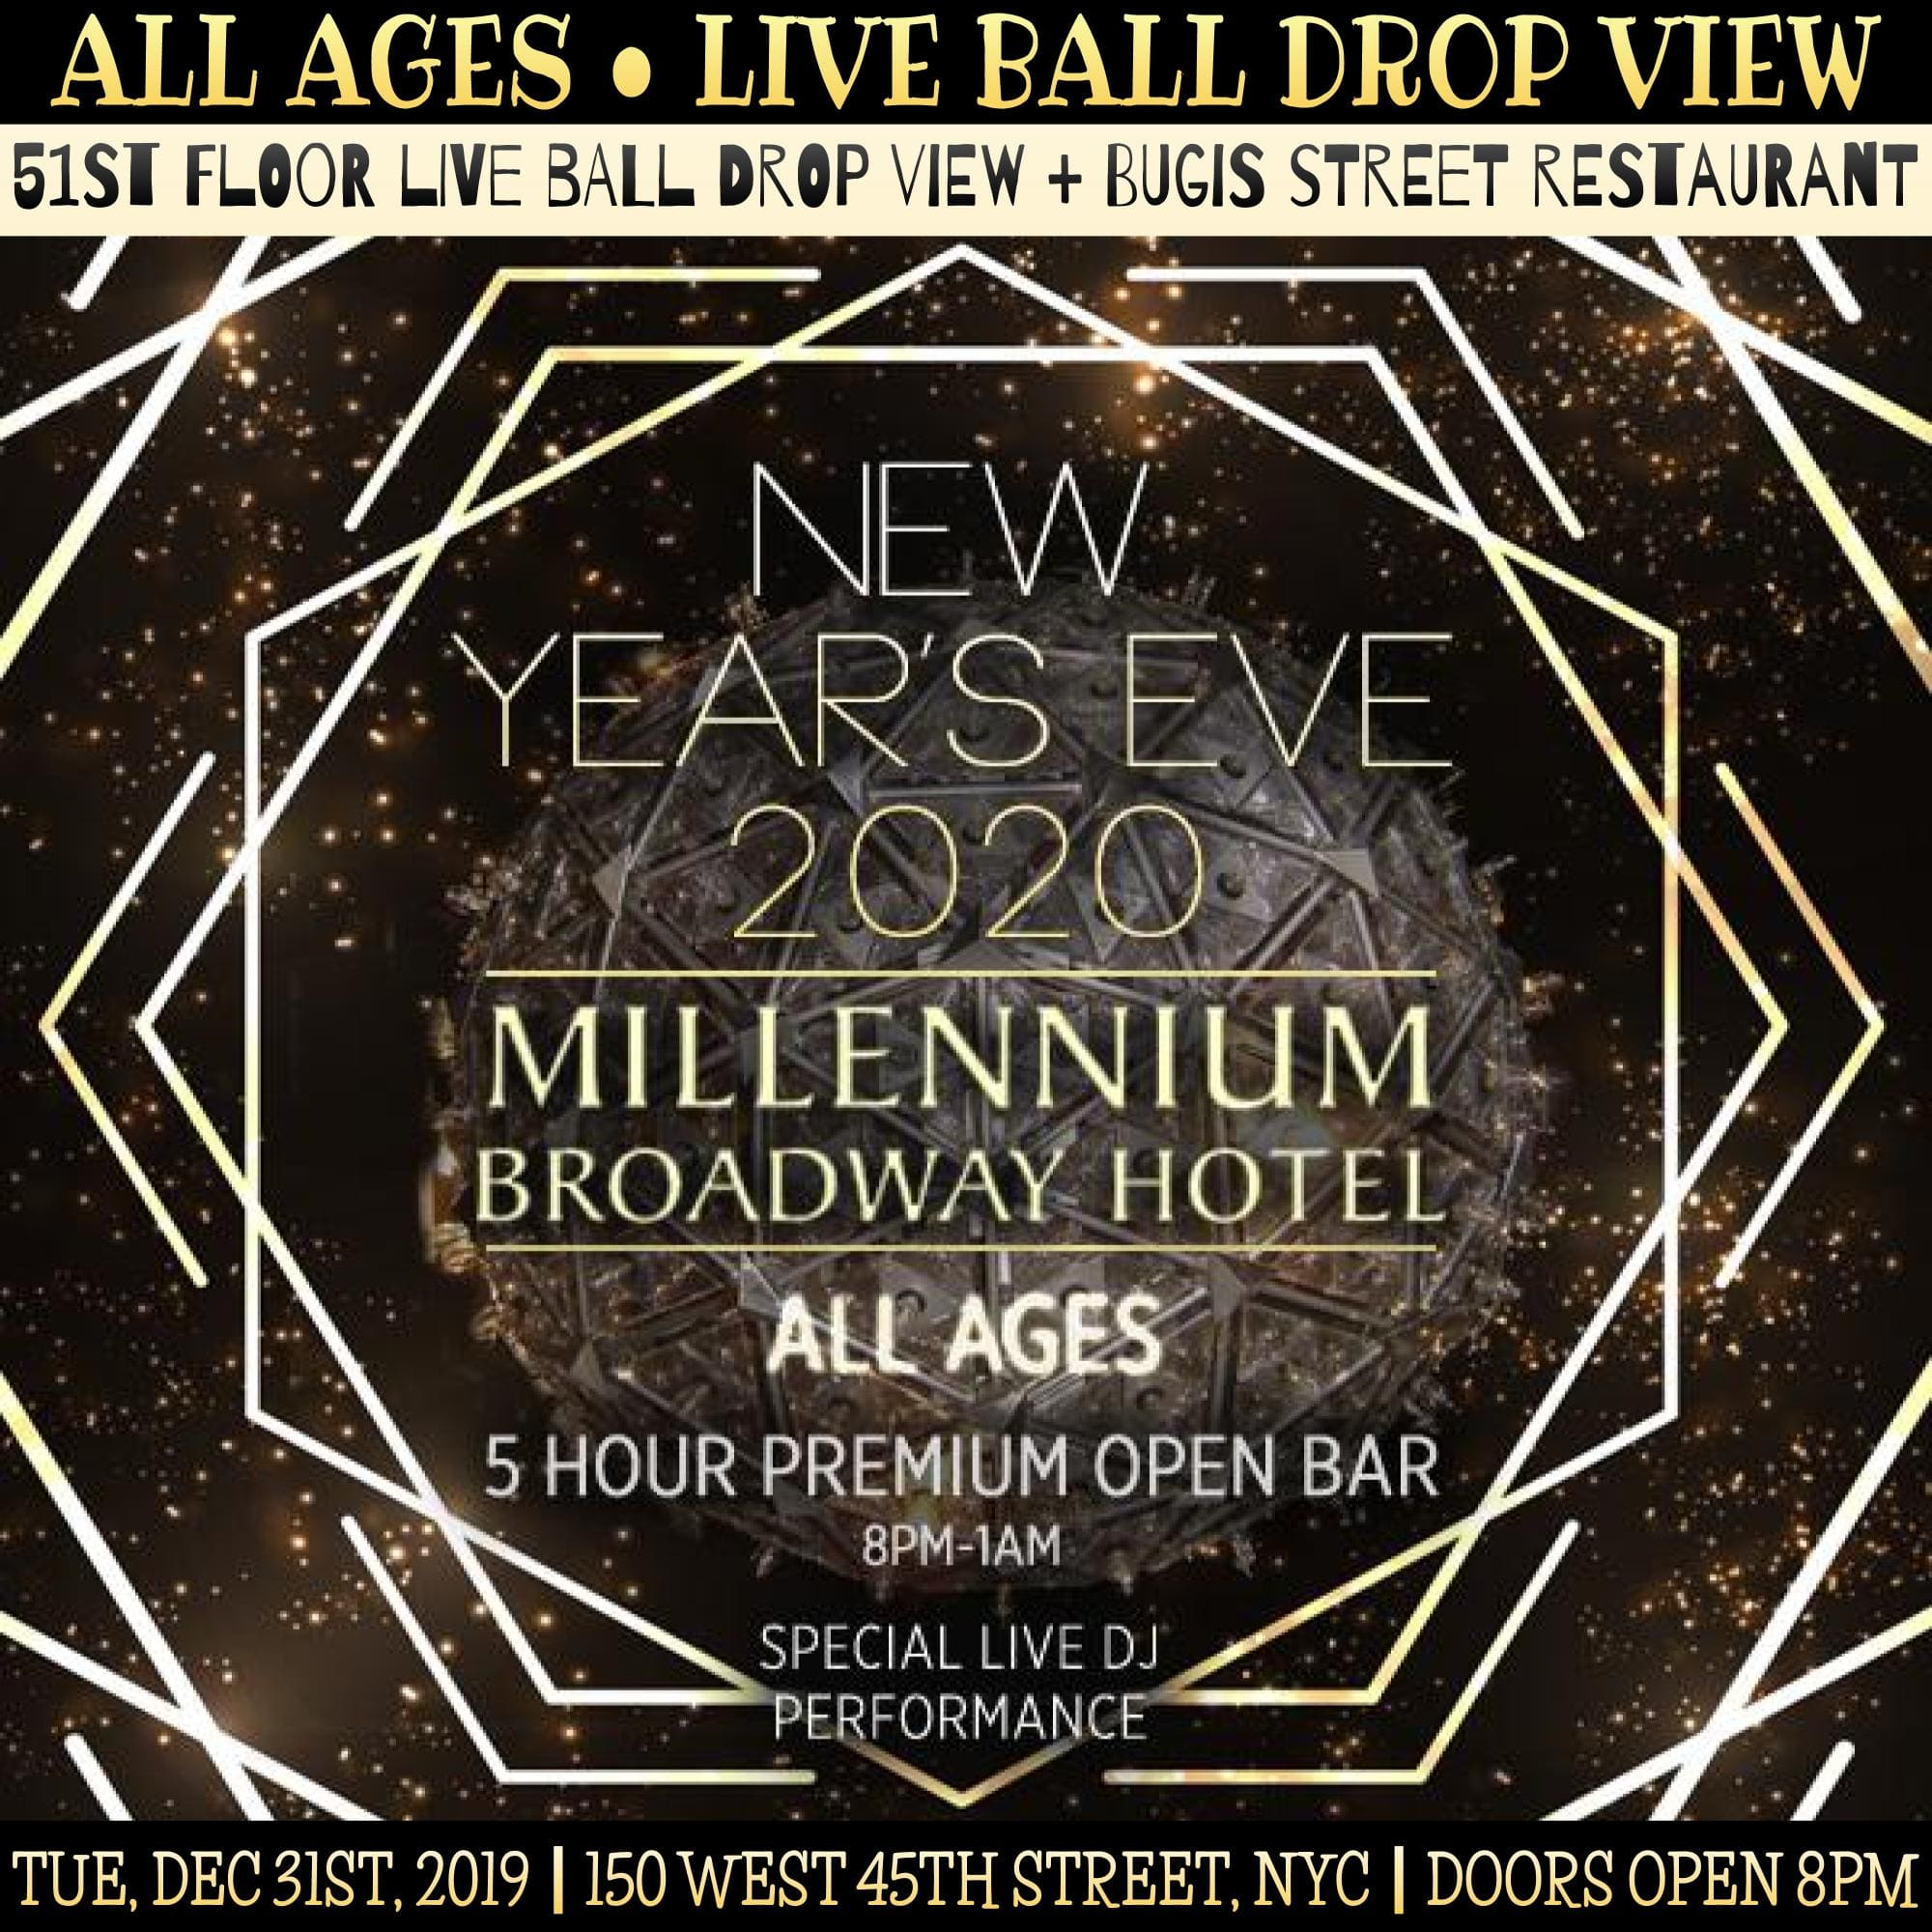 Millennium Broadway (All Ages / 51st-Floor) NYE 2020